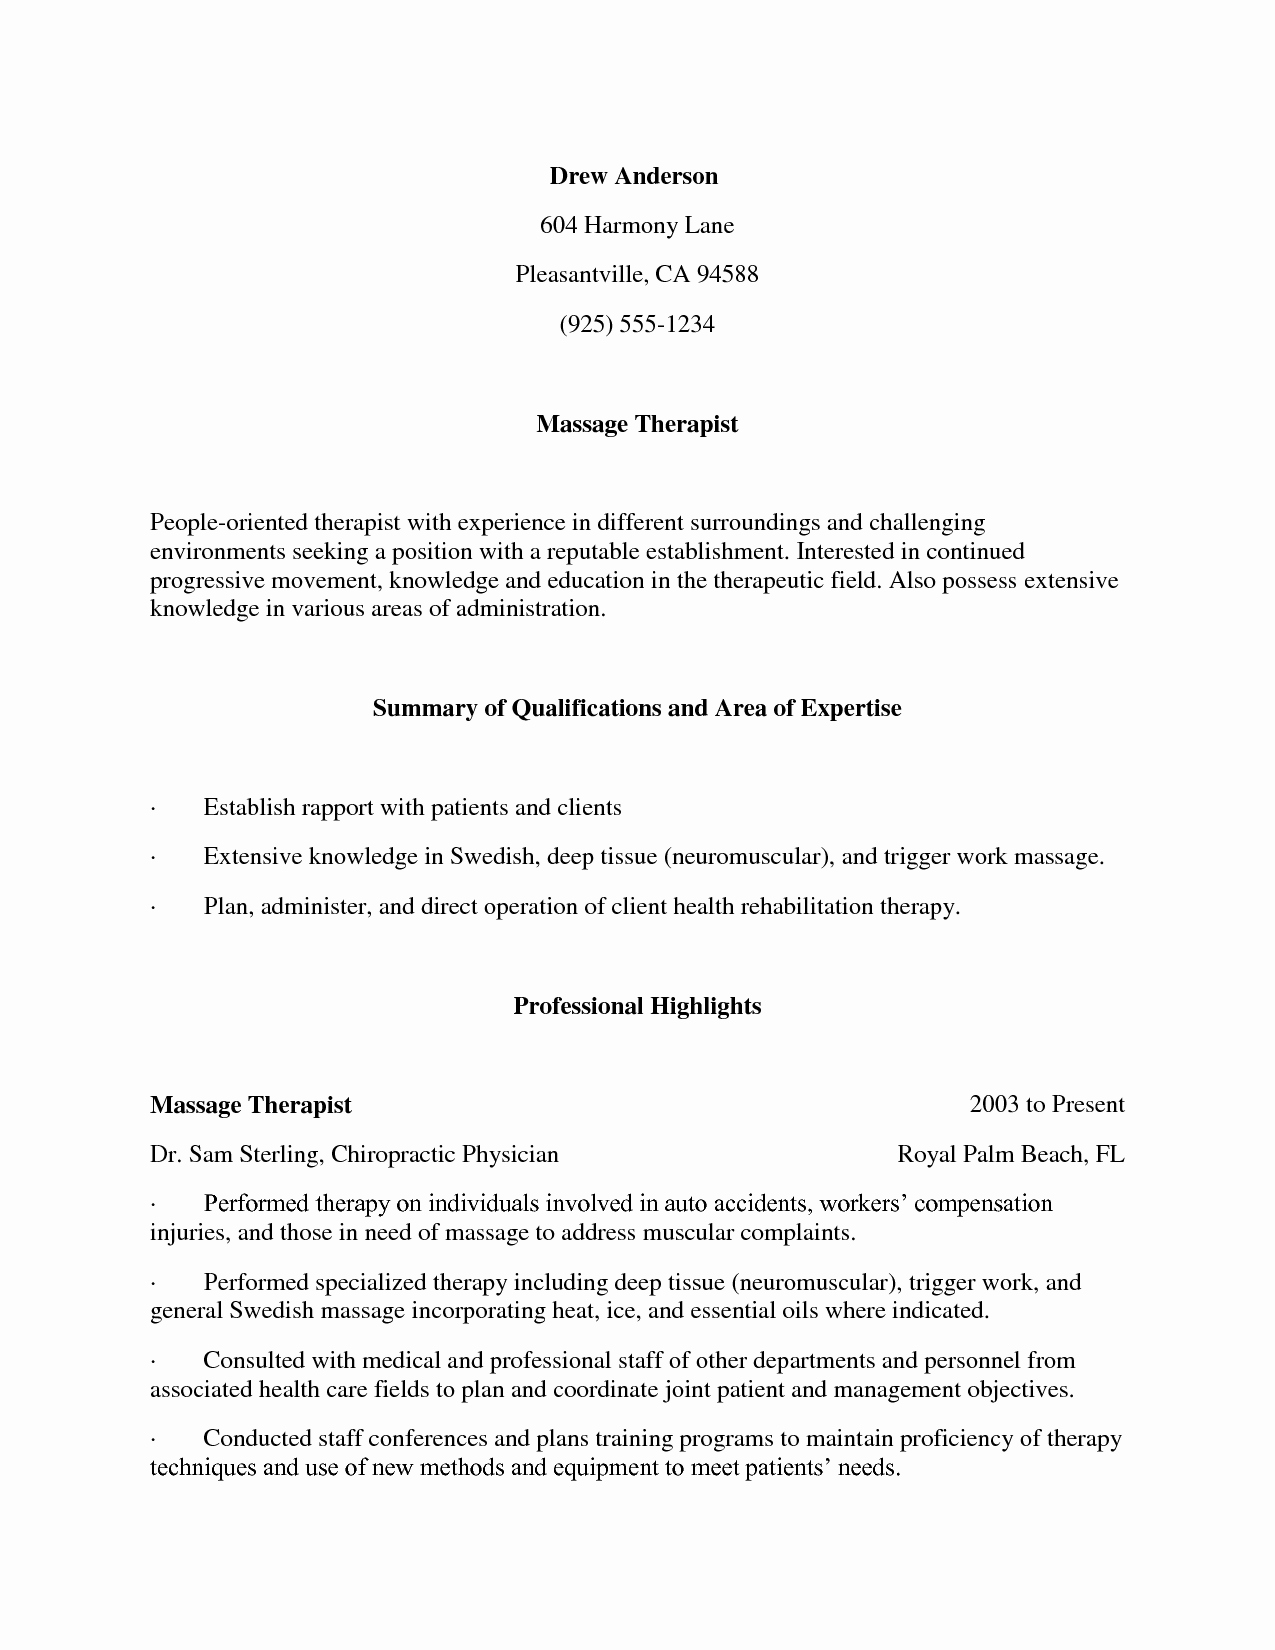 Massage therapist Resume Objectives Cover Letter Samples